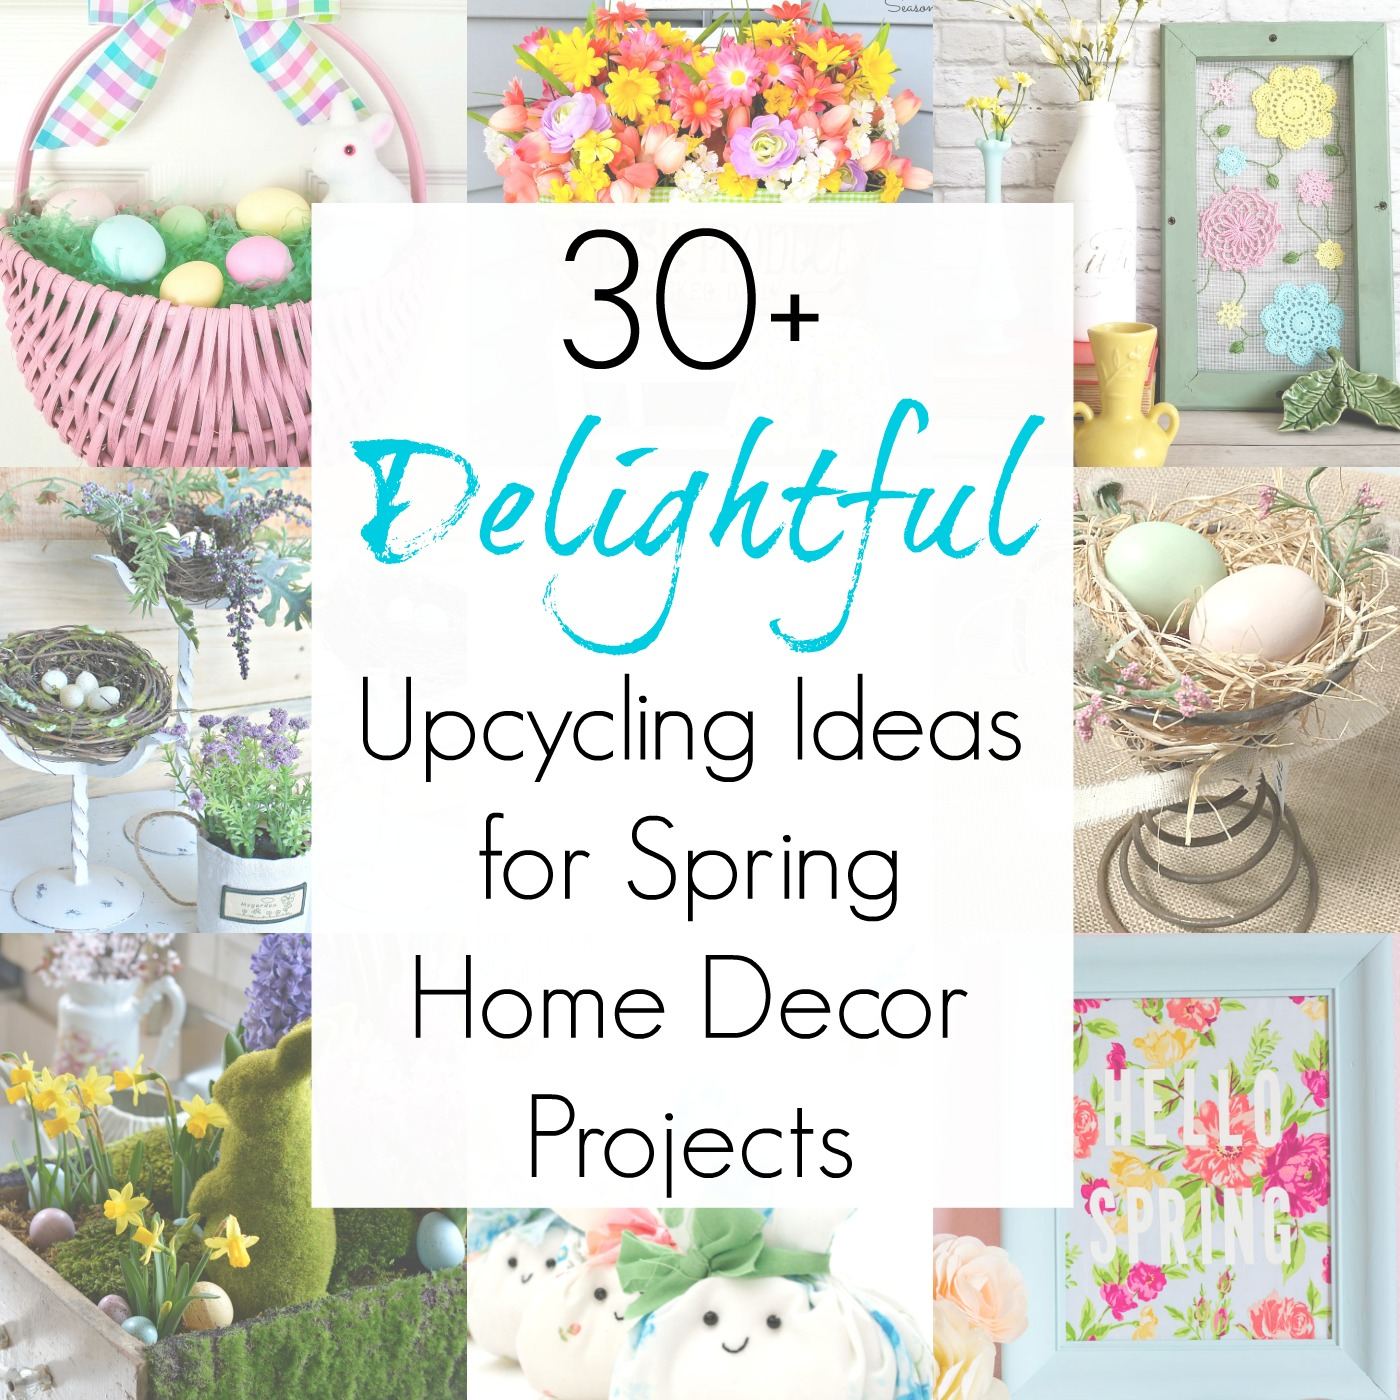 Upcycling ideas for Easter decor and Spring decor for your home